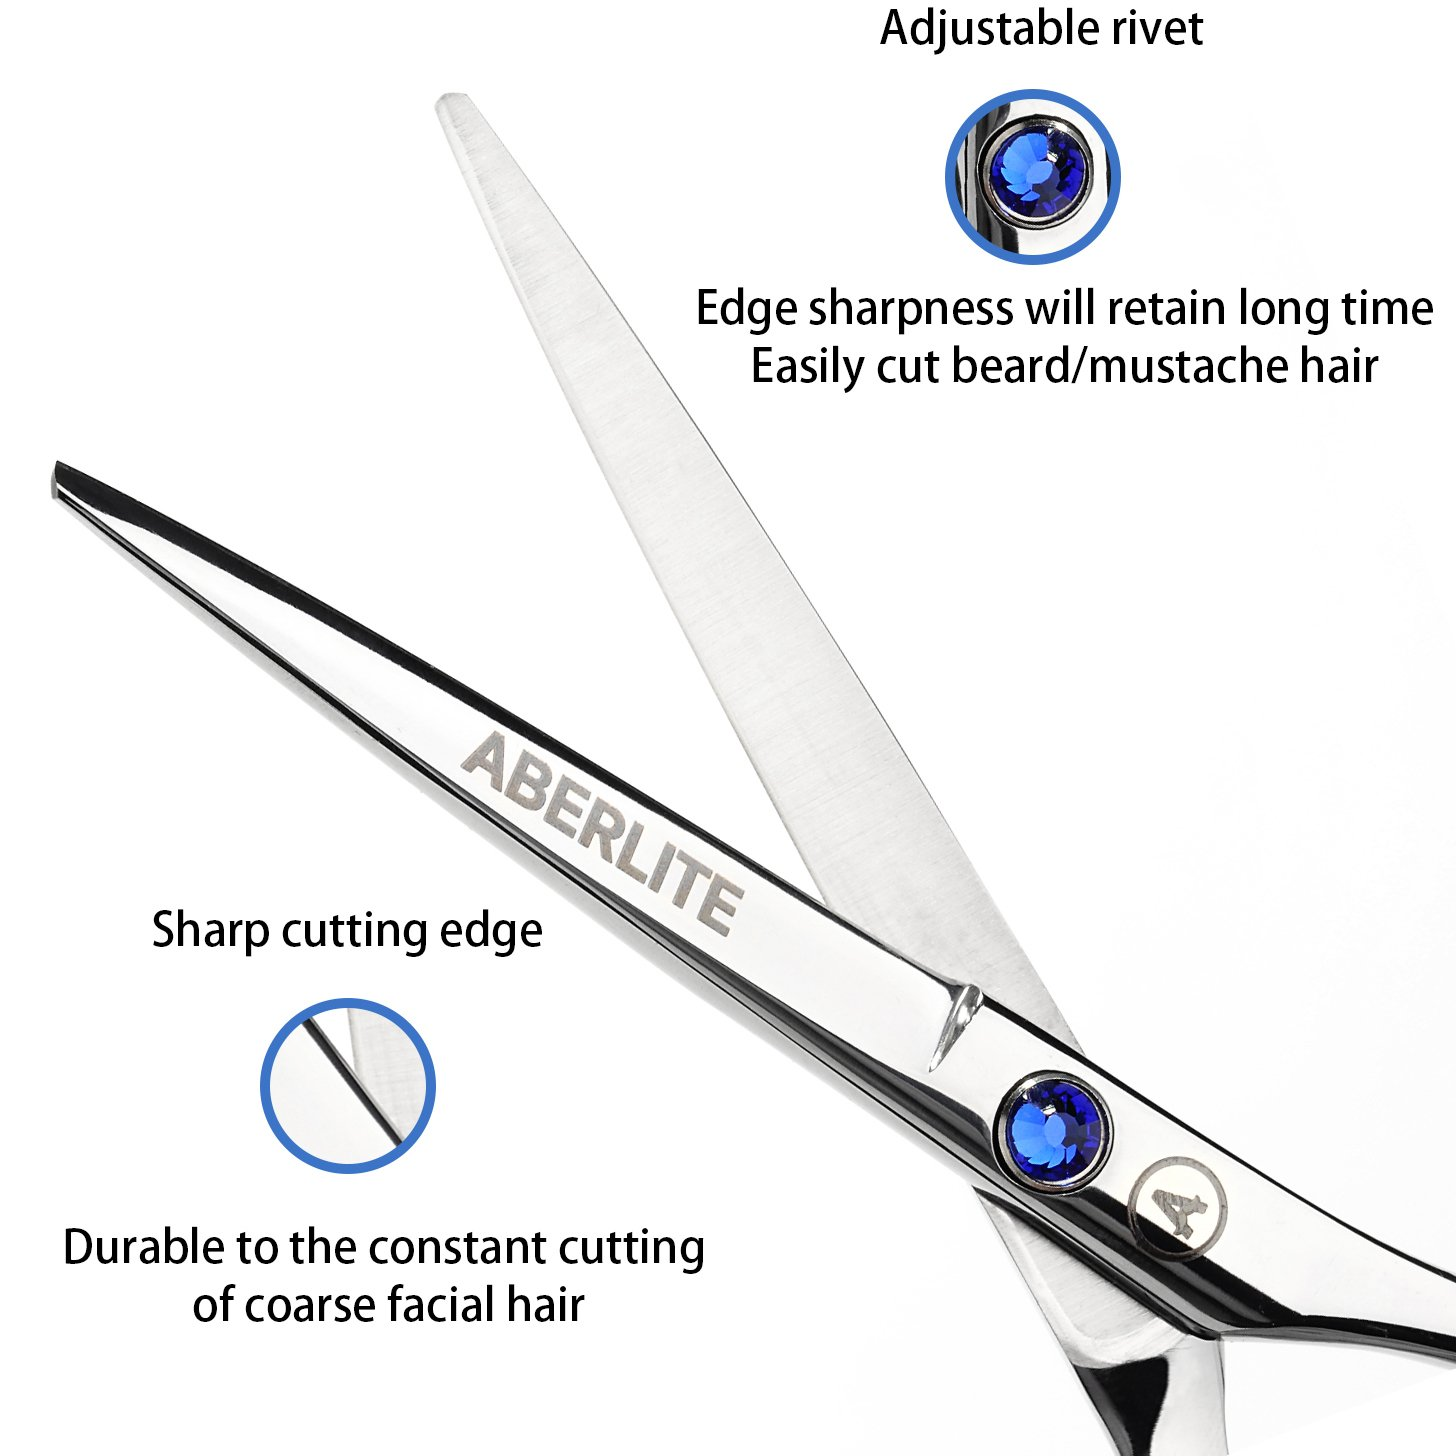 Beard Scissors Kit for Men (5 pcs) | 5'' Professional Beard/Hair Scissors (Japanese Stainless Steel), Travel Size Precision Beard/Mustache Scissor, Pocket Wood Comb, Master Barber Comb, and PU Case Set by Aberlite (Image #4)